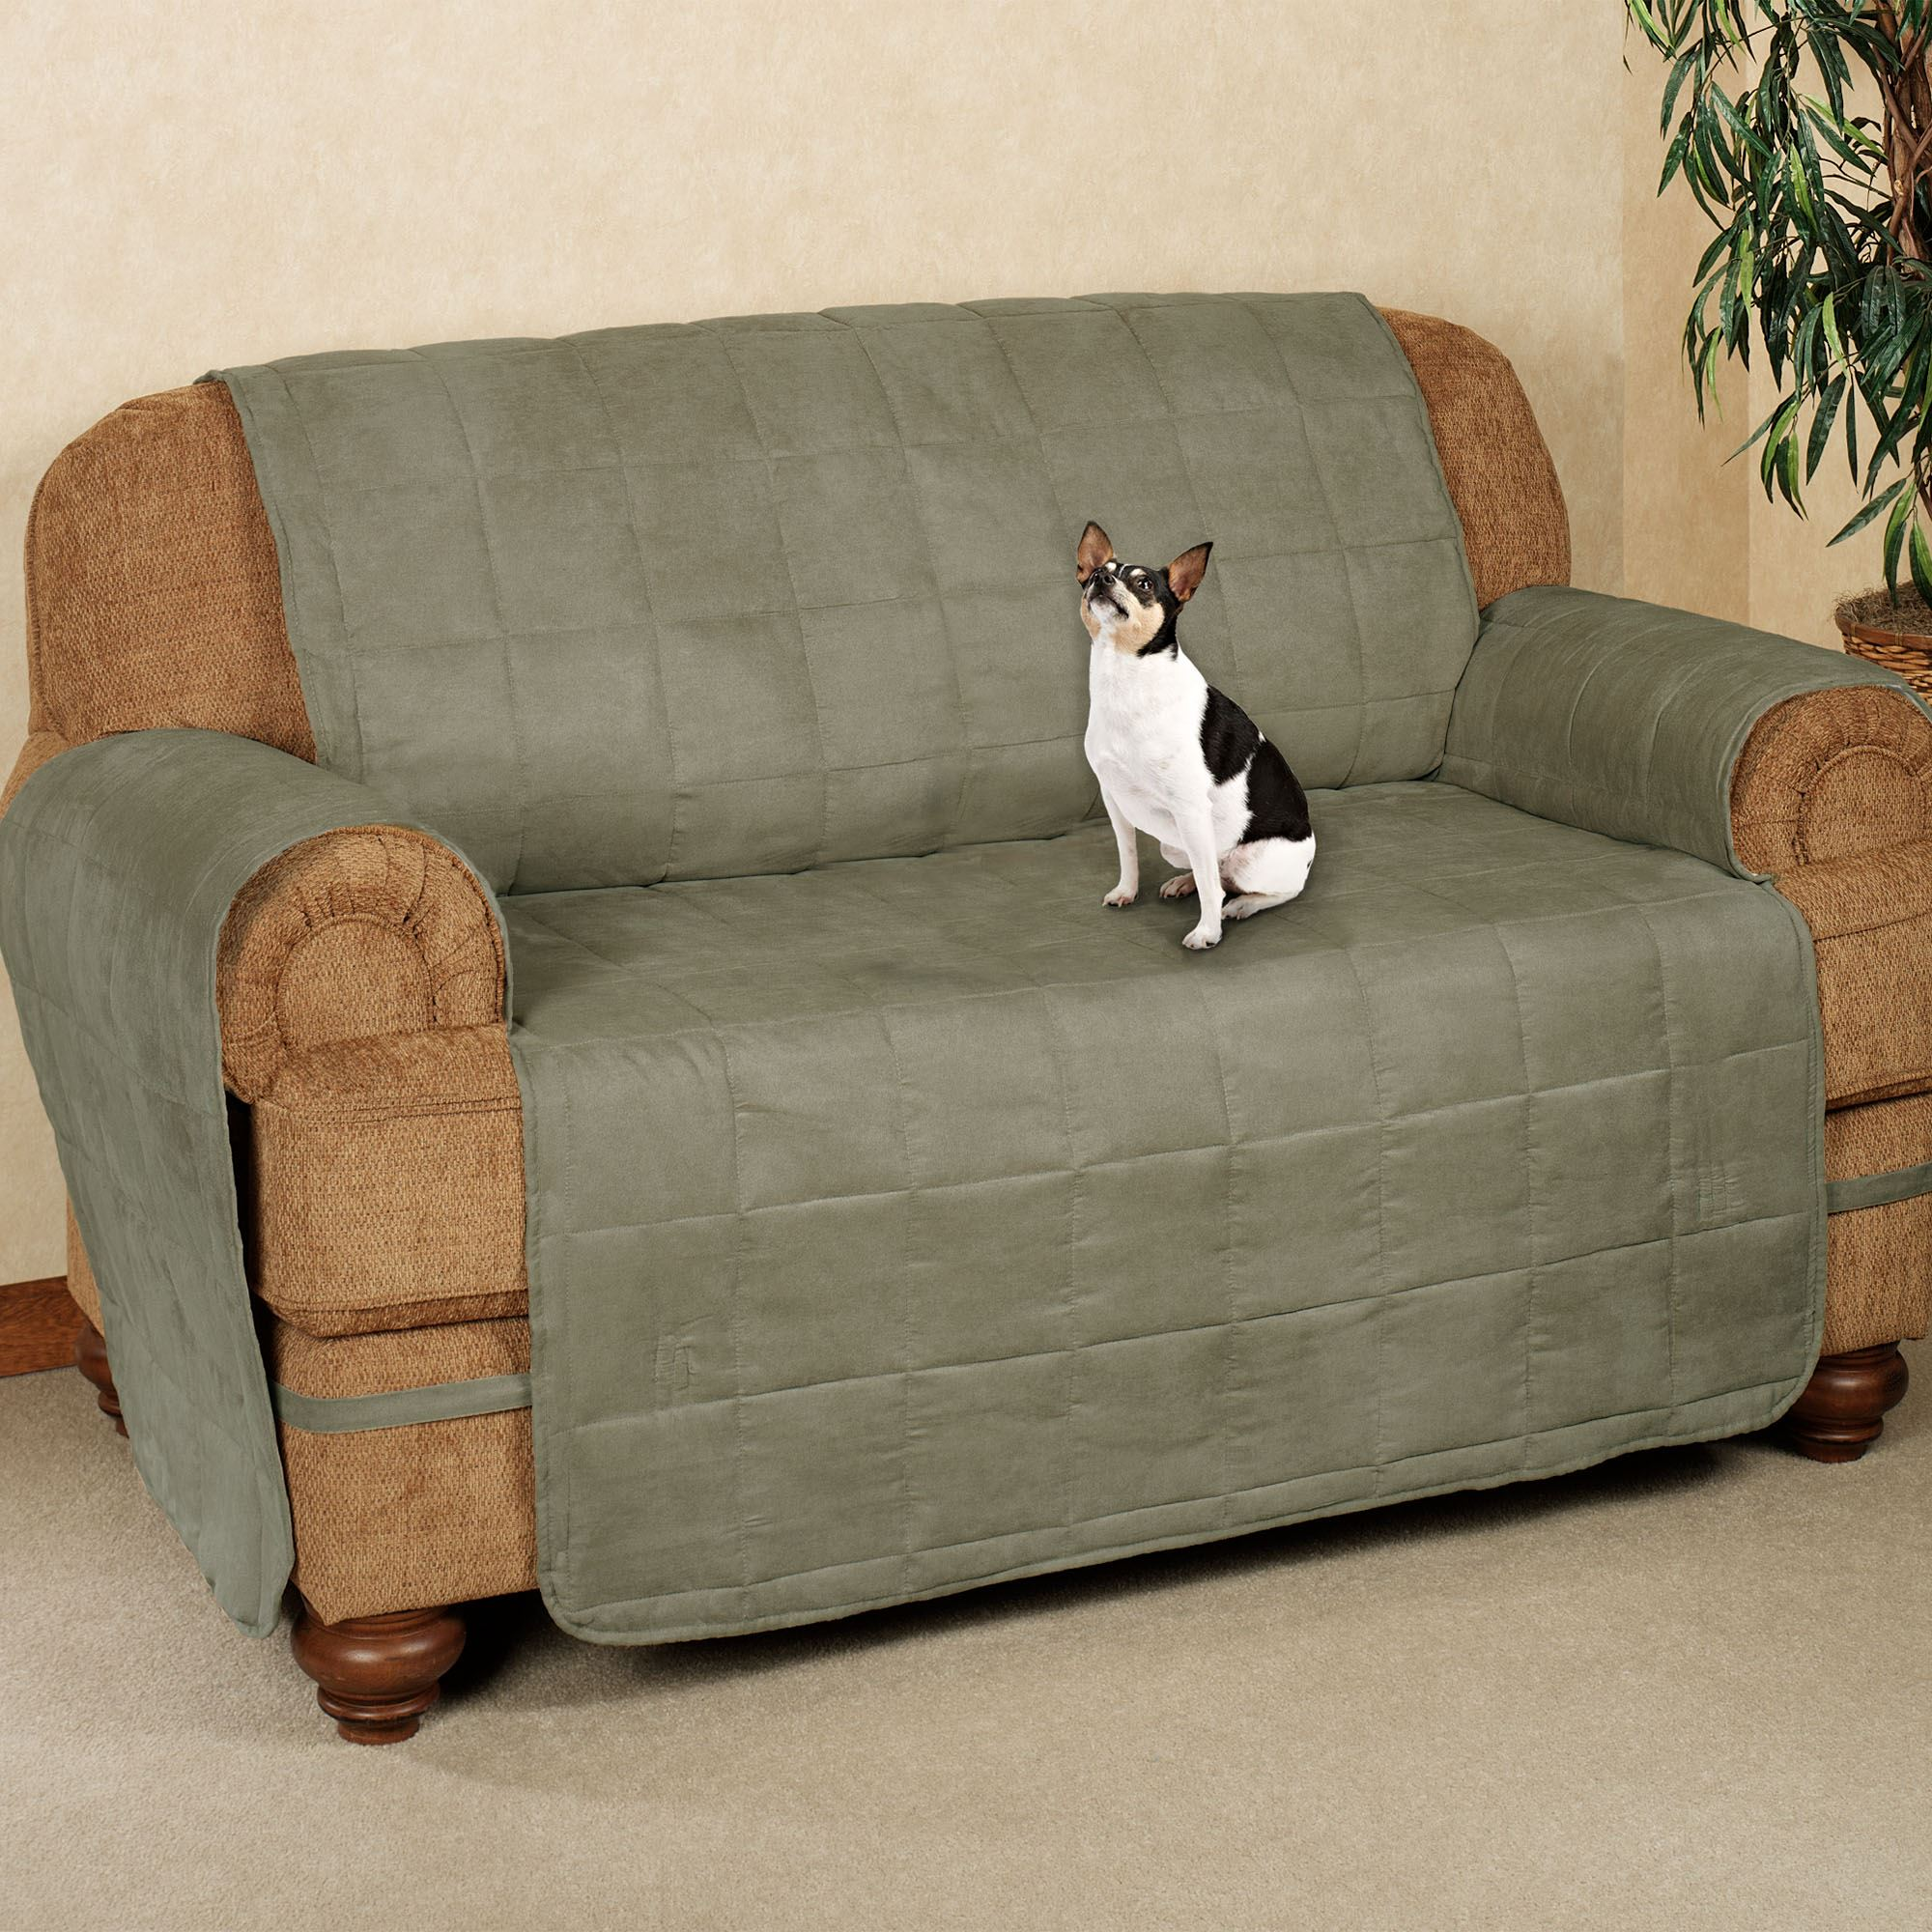 corner sofa outdoor furniture covers bed cover dubai ultimate pet protectors with straps